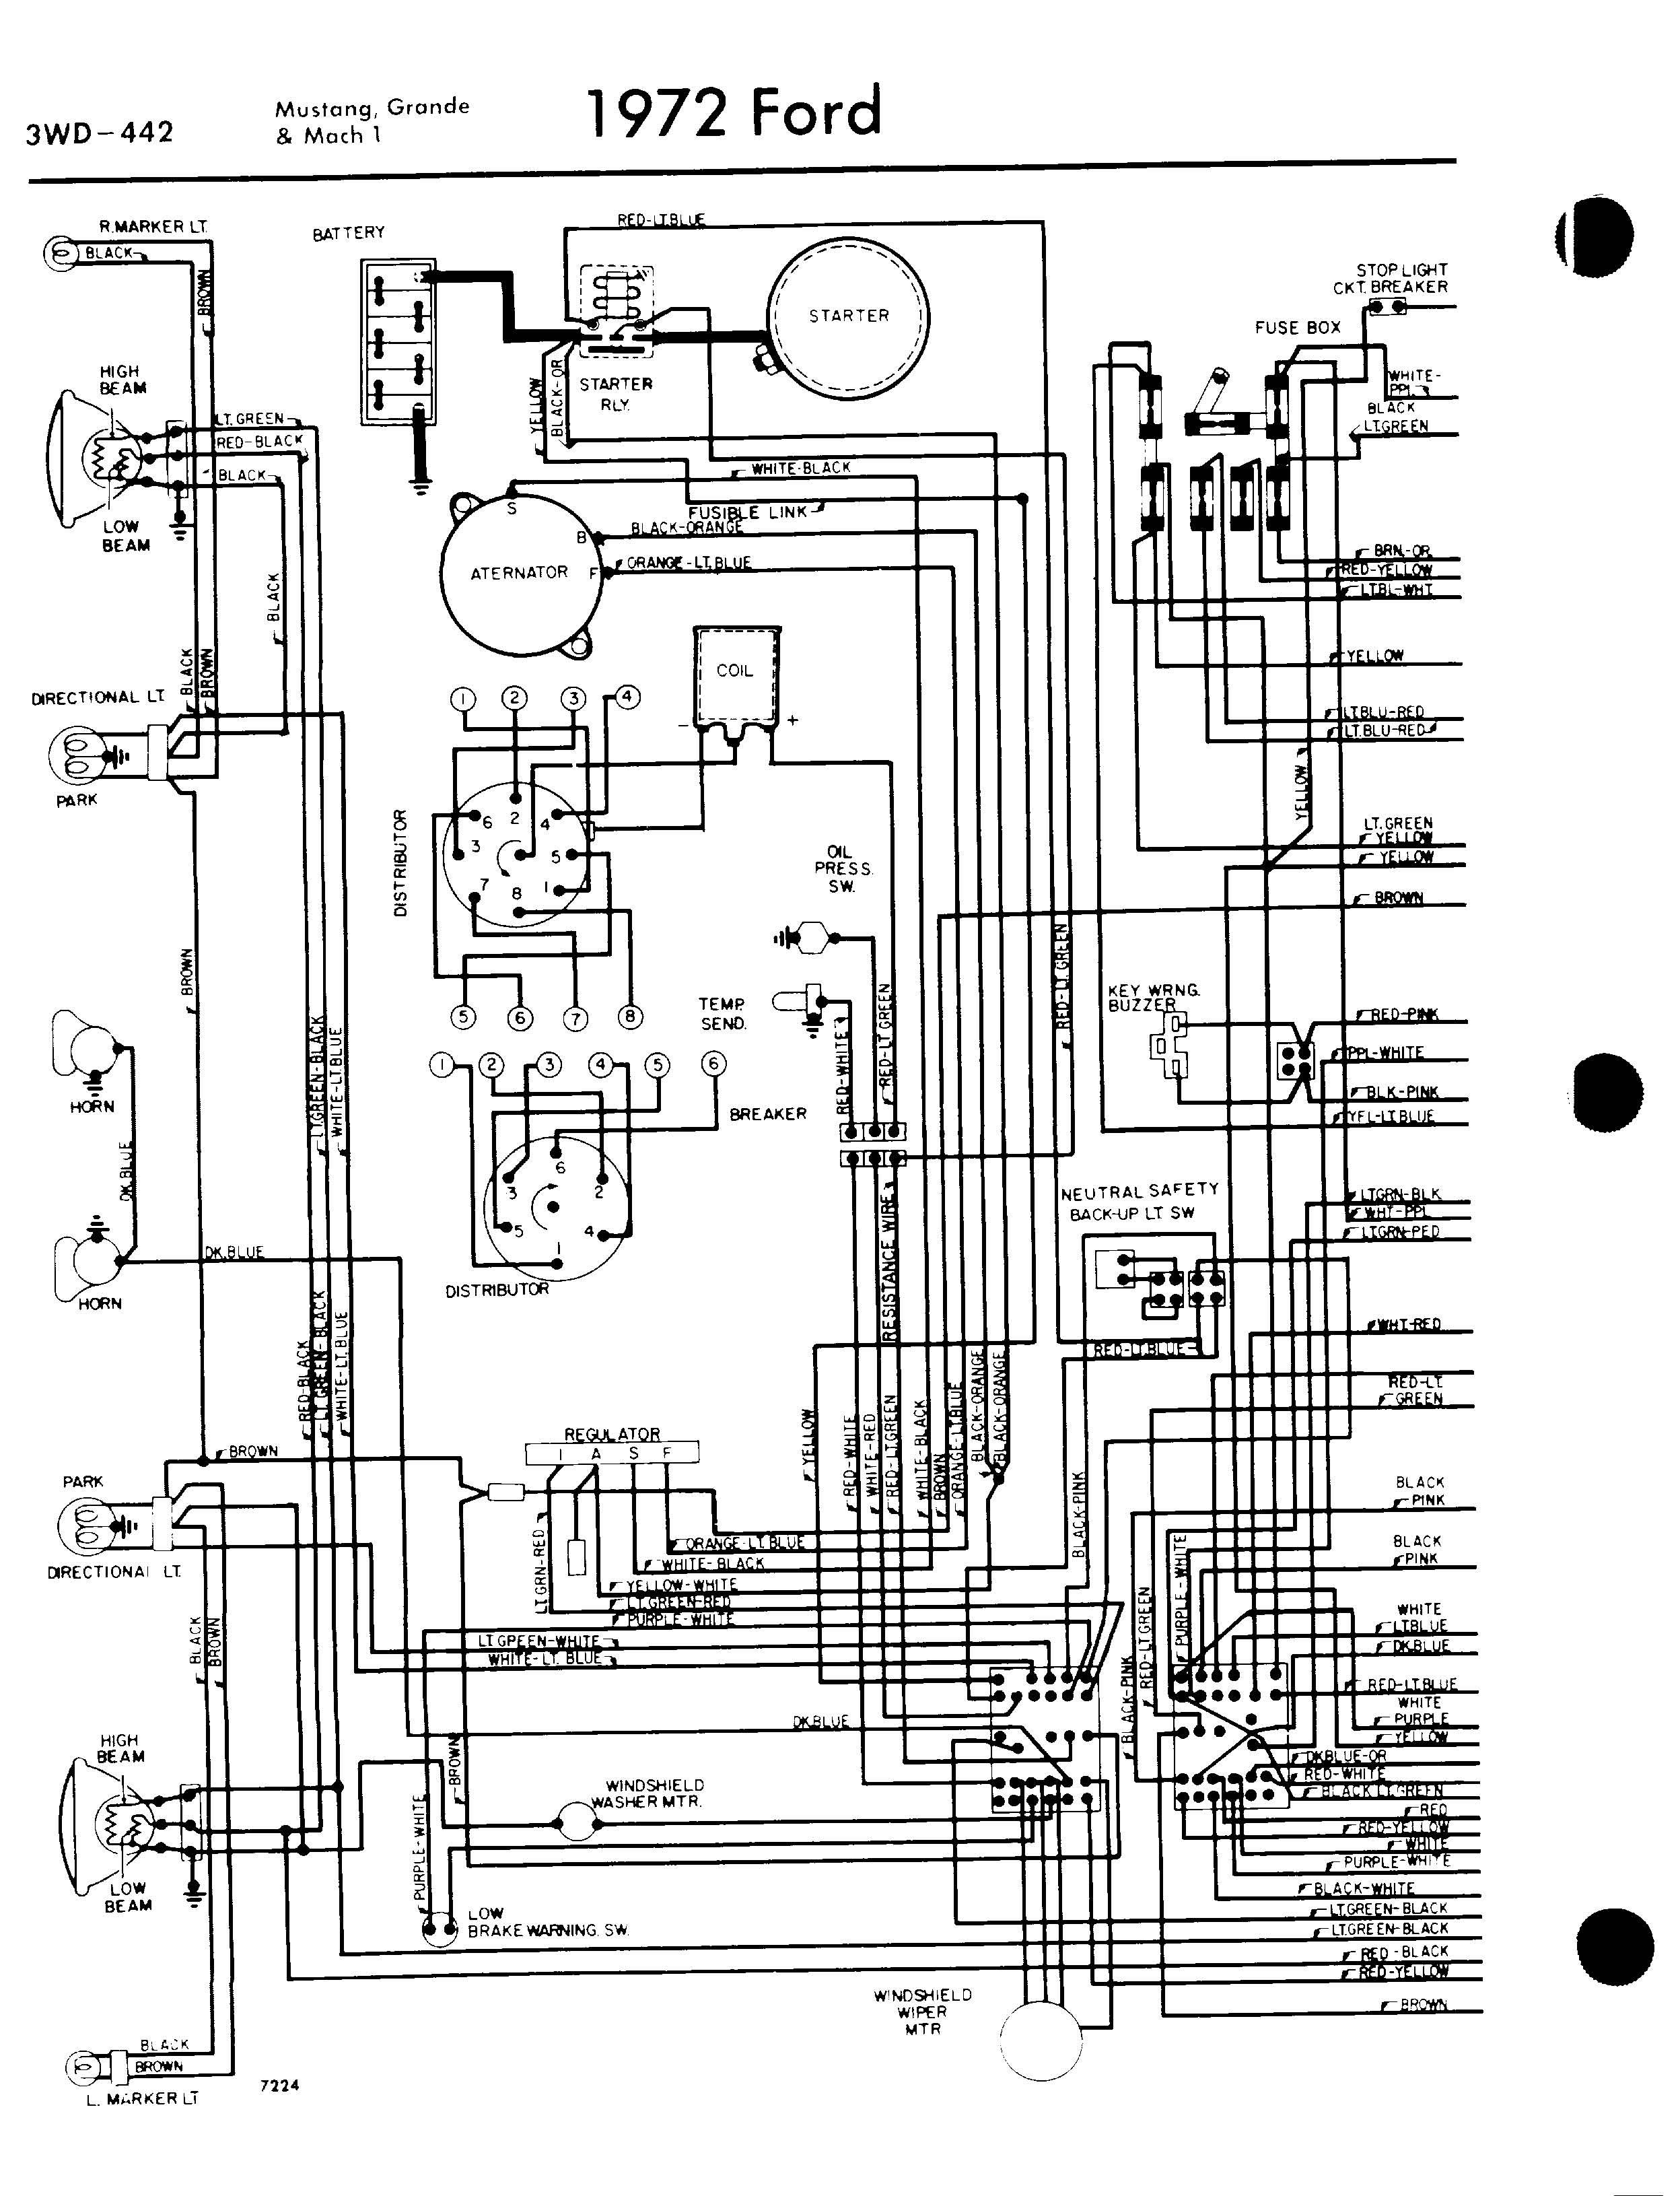 small resolution of 1972 ford mustang engine wiring diagram wiring diagrams scematic 66 mustang alternator wiring diagram 1970 ford